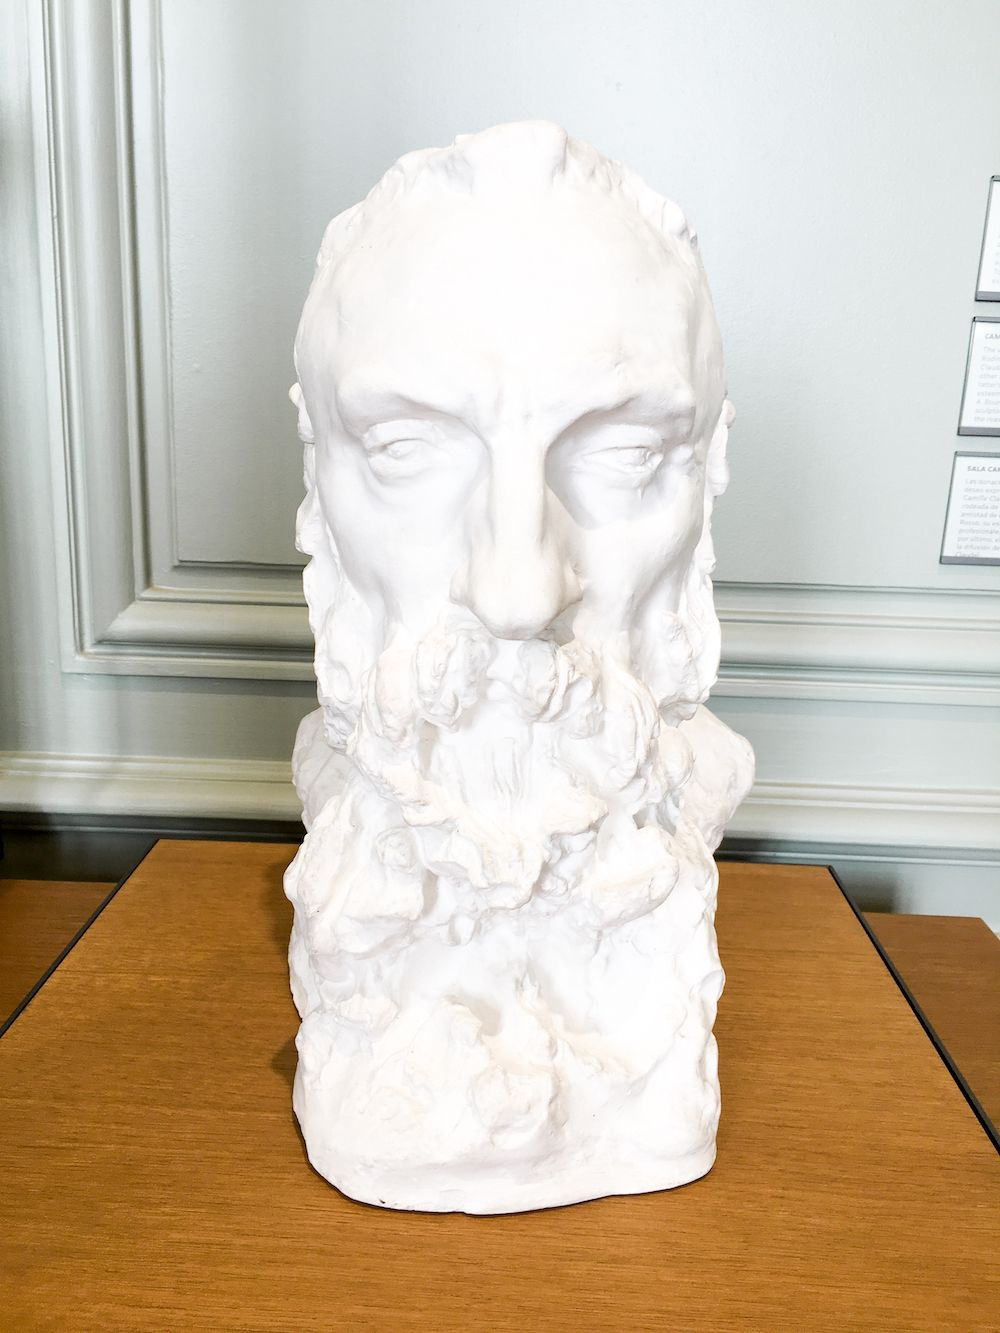 Bearded man sculpture at Musée Rodin